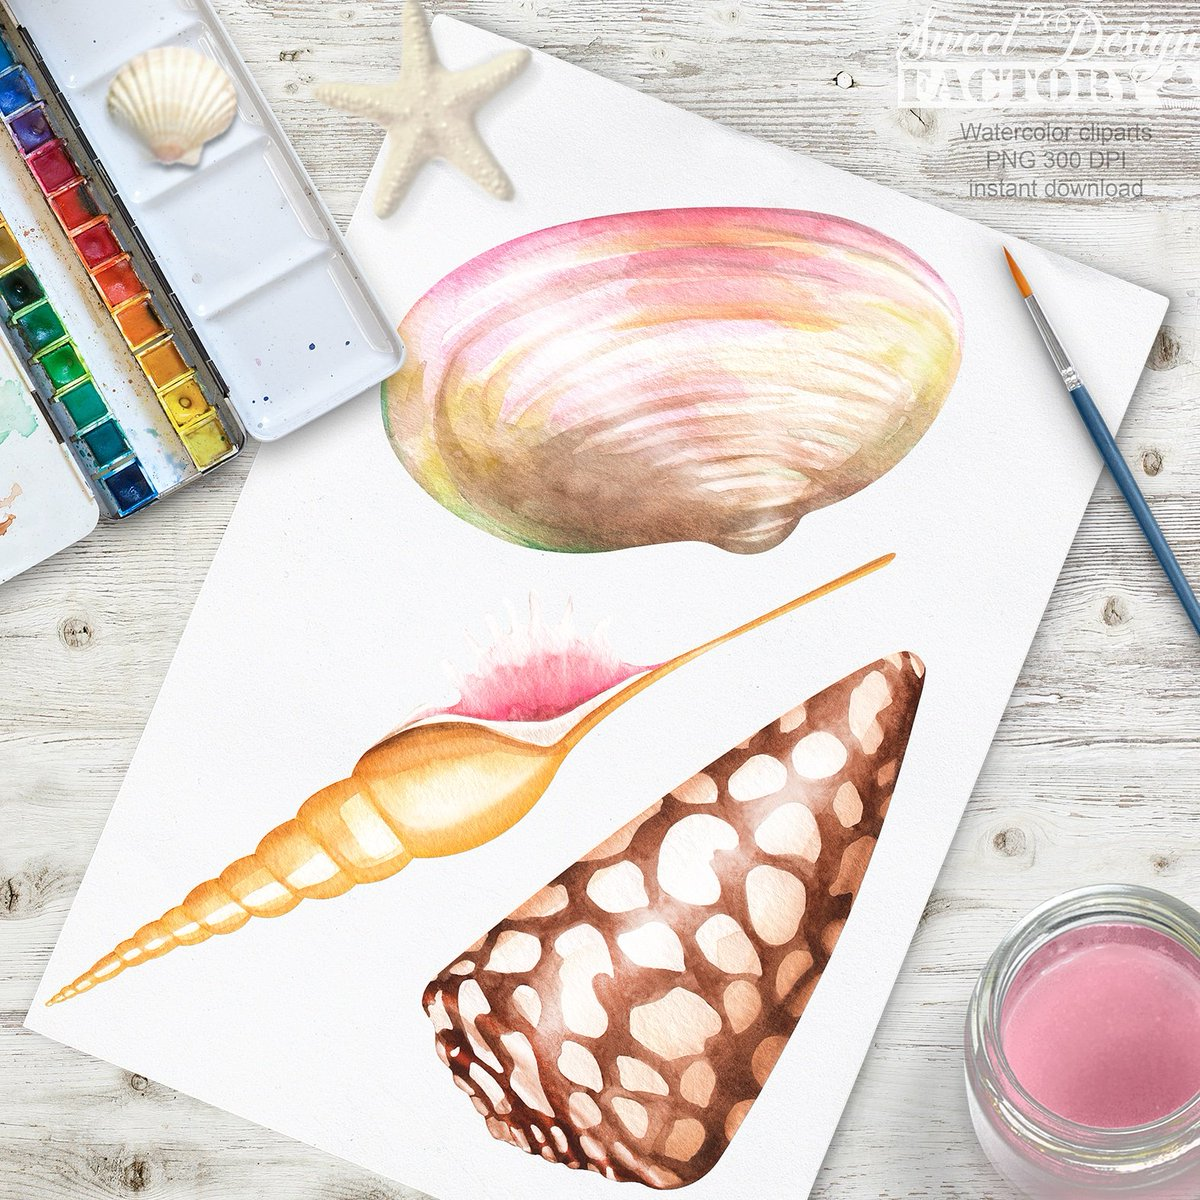 Clam watercolor clipart banner free stock beachclipart hashtag on Twitter banner free stock